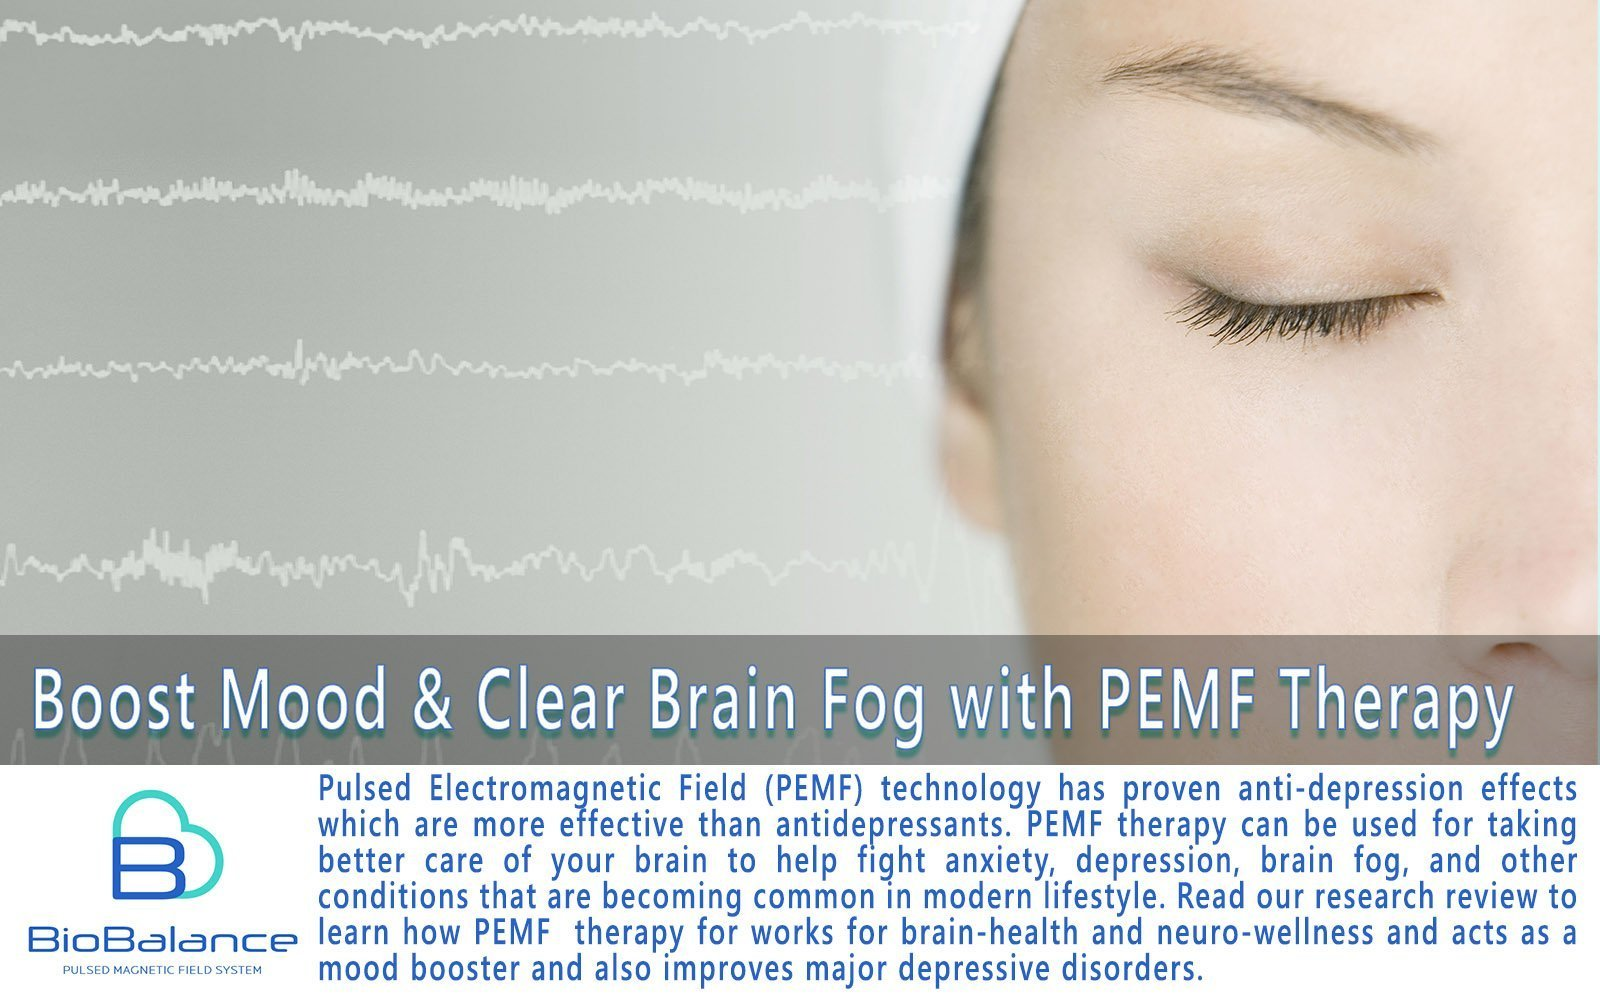 Boost Mood & Clear Brain Fog with PEMF Therapy